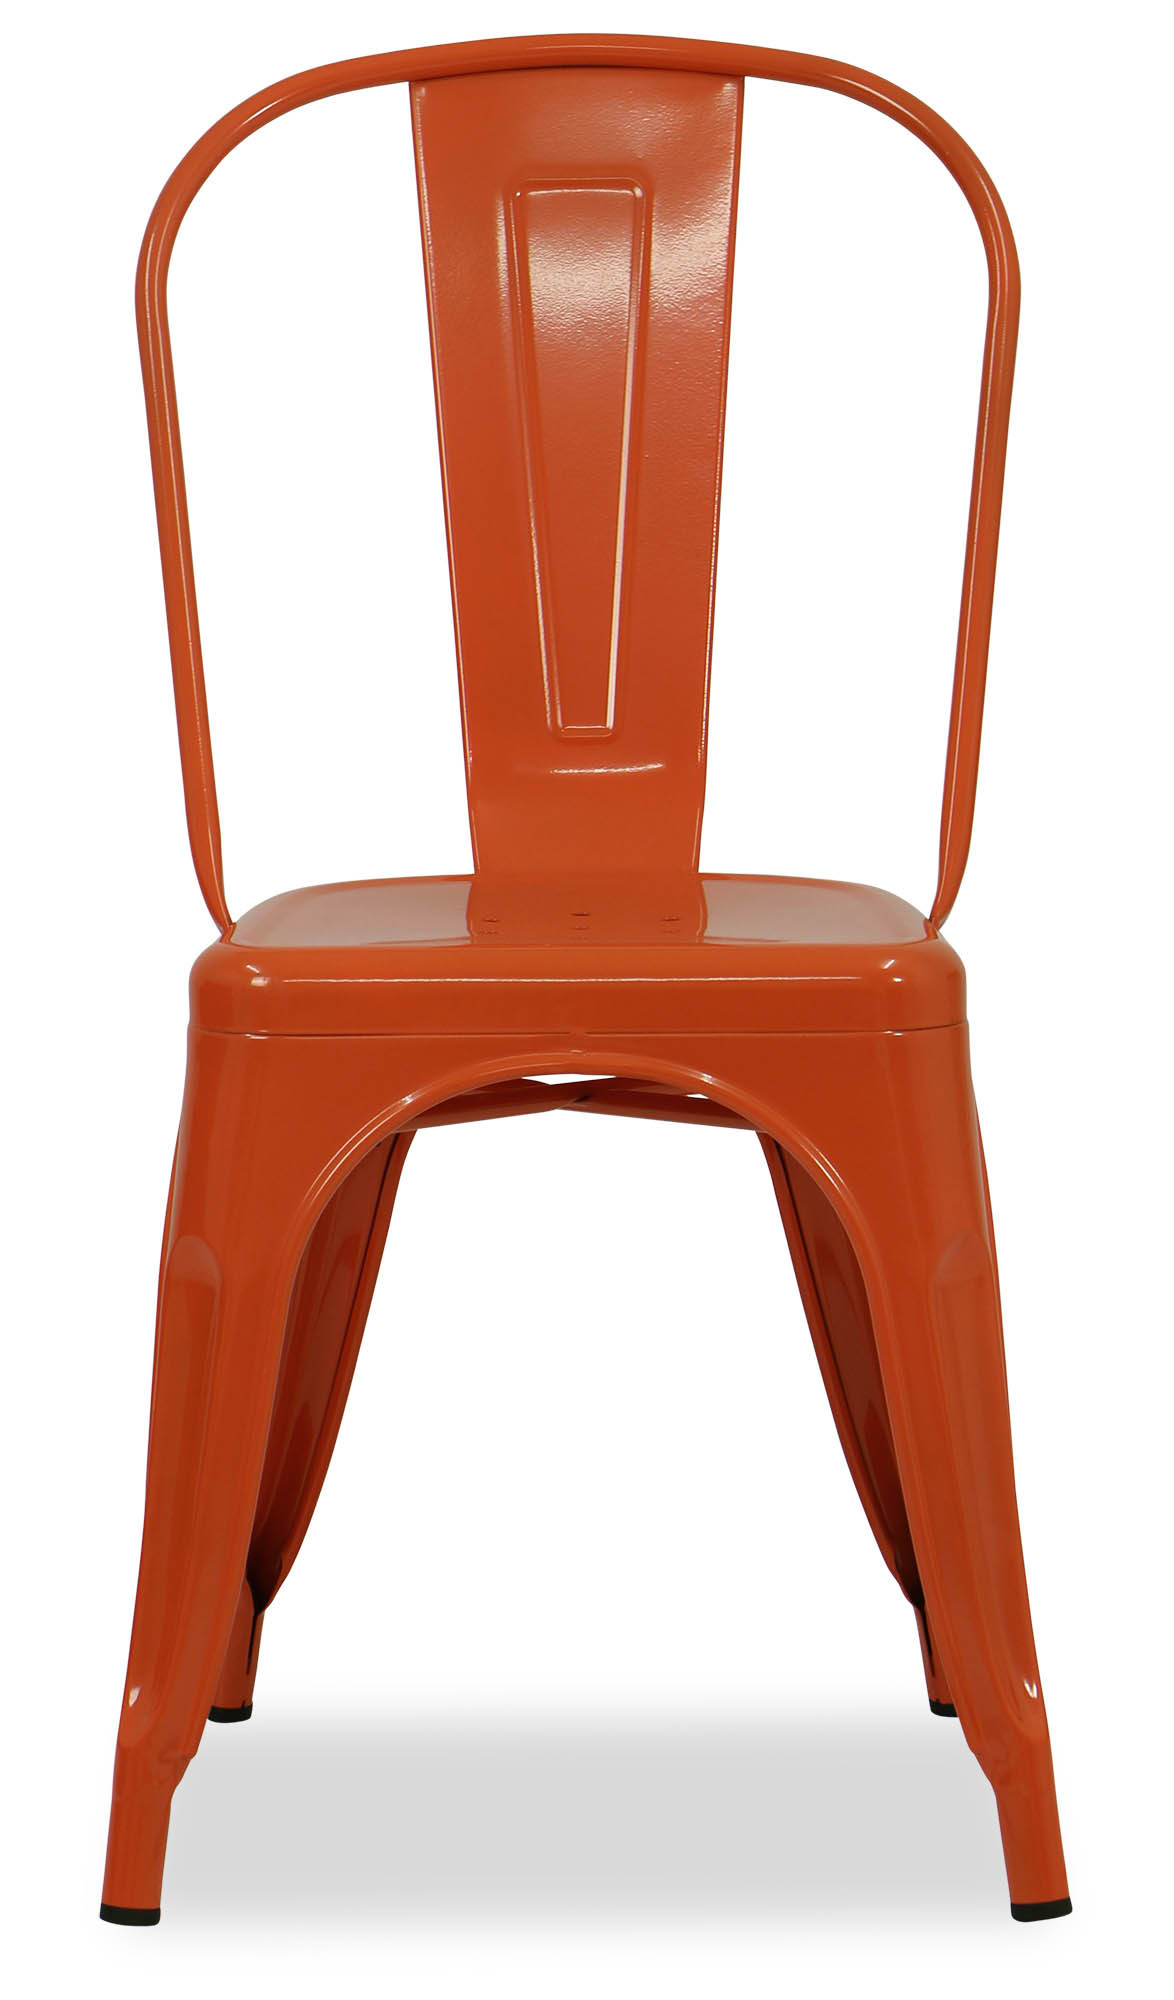 Retro Metal Chair Orange Dining Chairs Dining Room